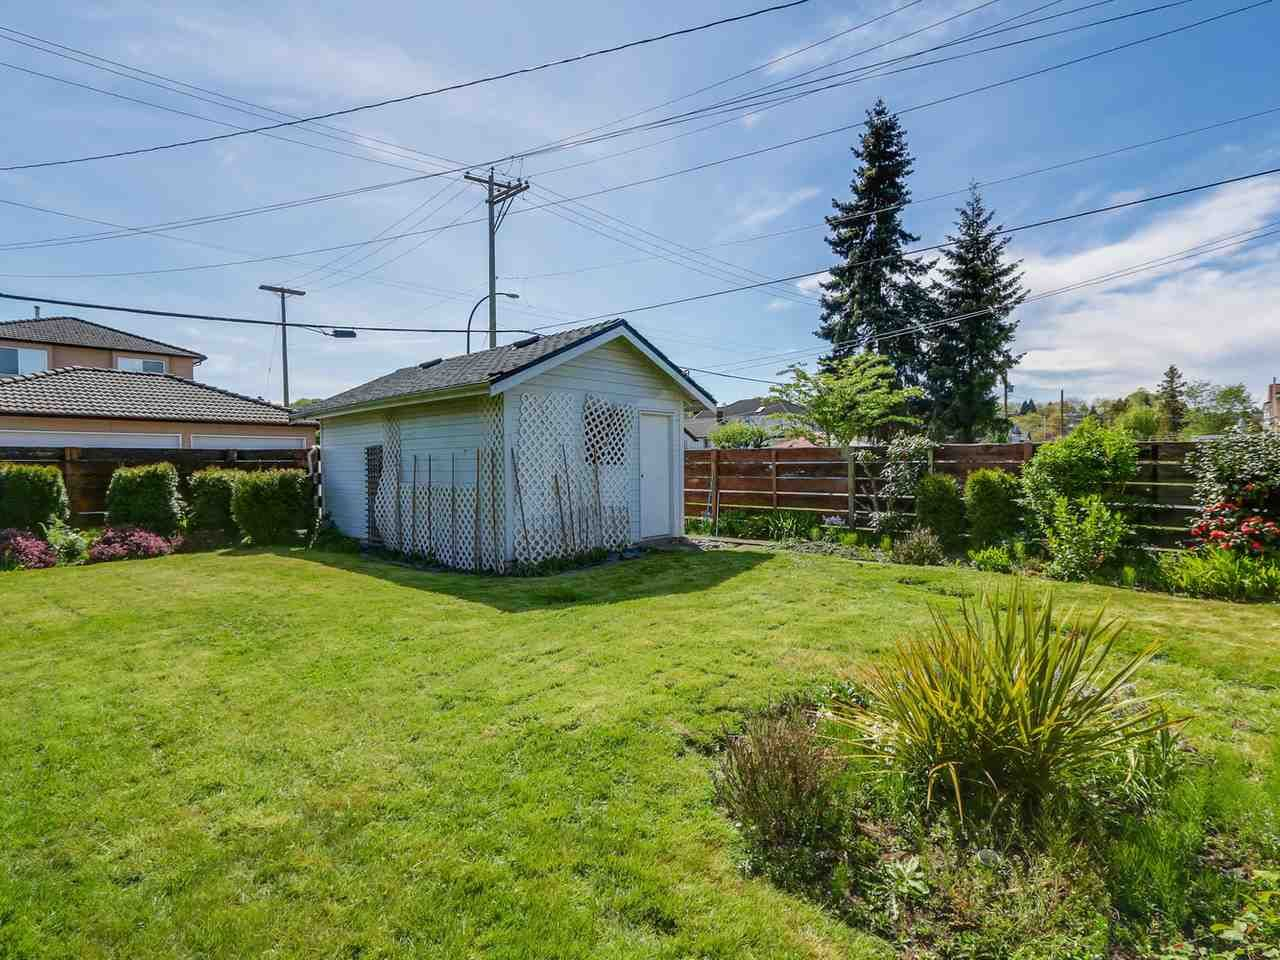 Photo 18: Photos: 2796 W 21ST Avenue in Vancouver: Arbutus House for sale (Vancouver West)  : MLS®# R2078868